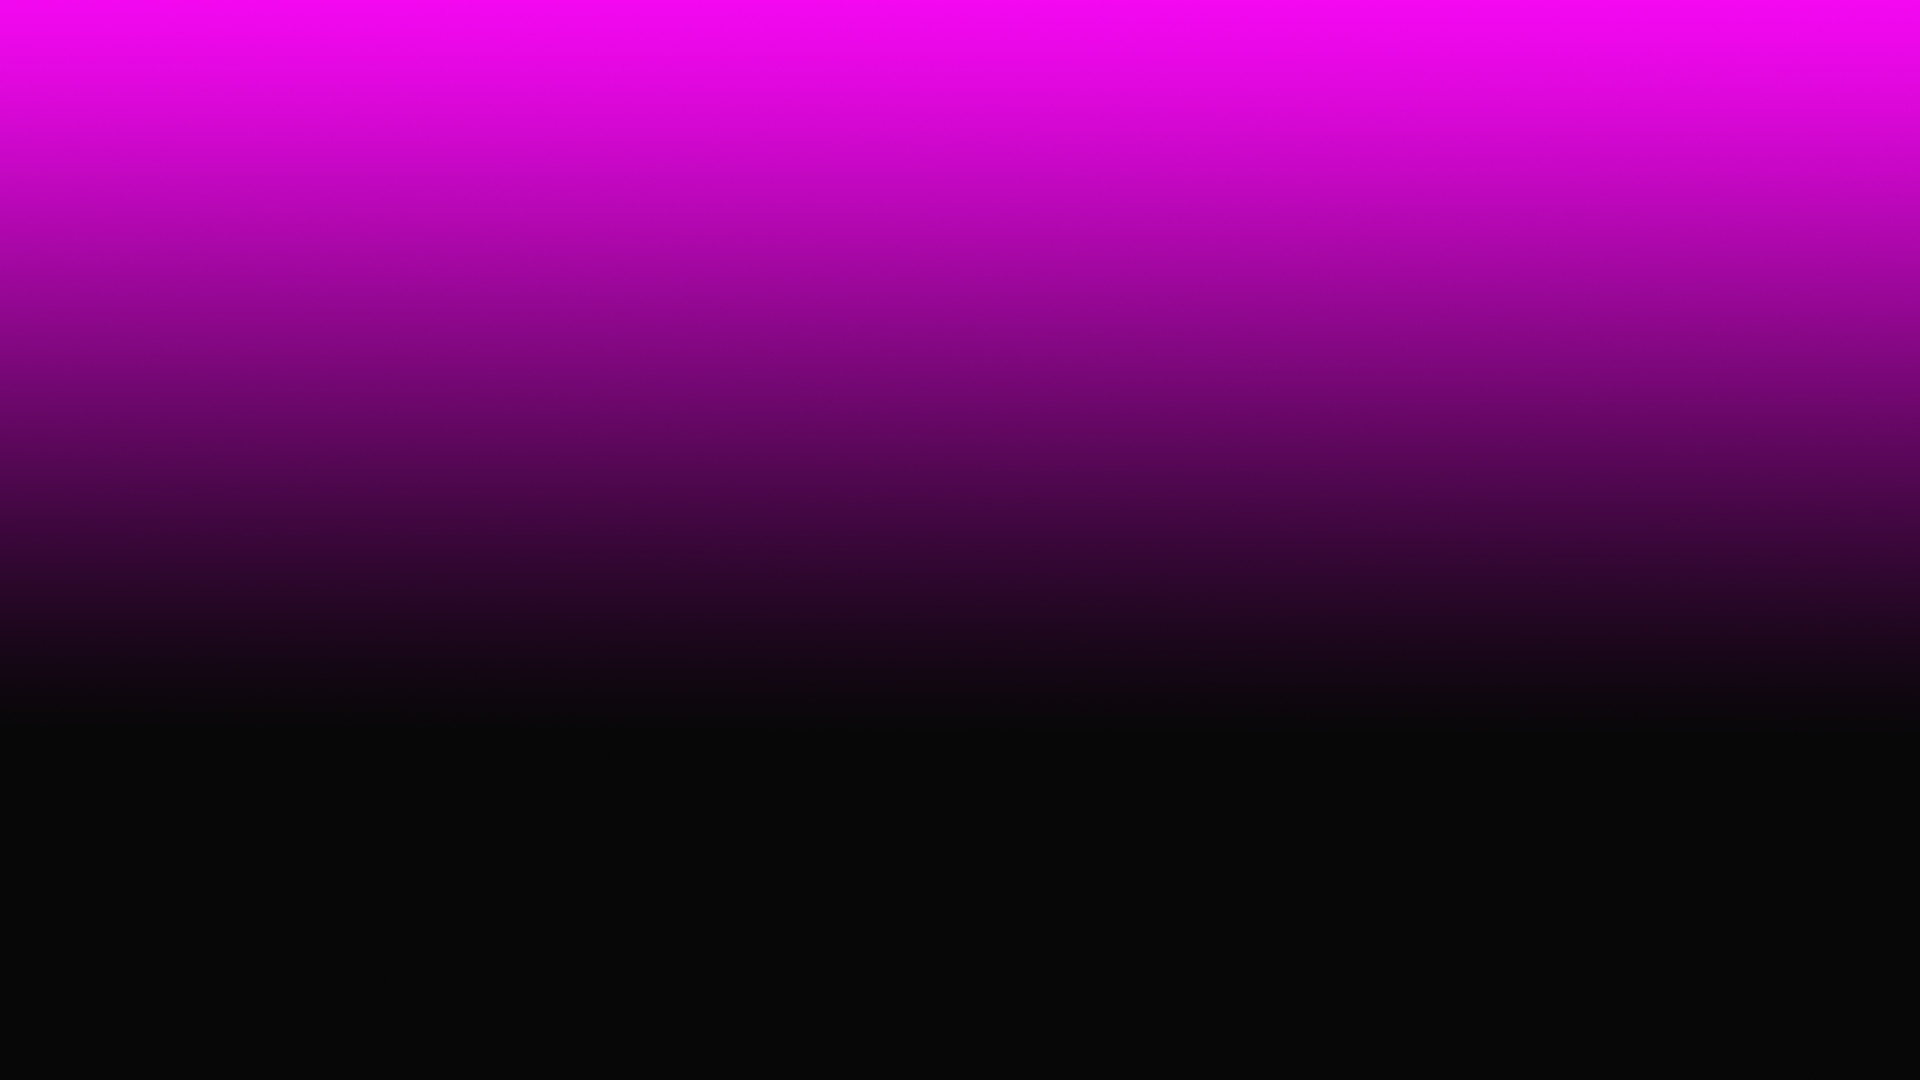 Res: 1920x1080, Pink Black Gradient Desktop Wallpaper. Pink-Black Gradient